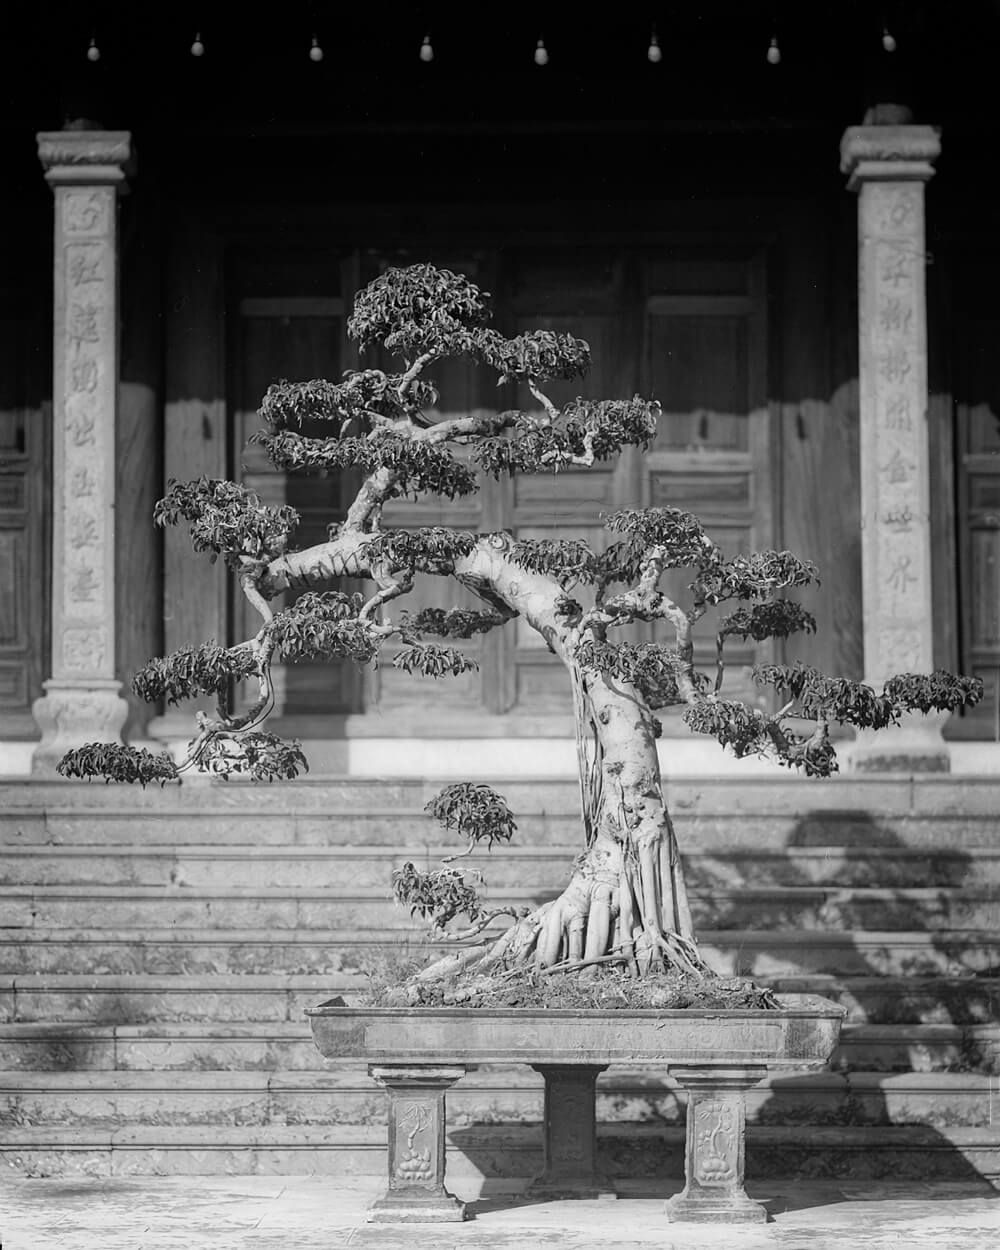 Sculptured Bush 2 - 5 Frames... Around Hai Phong, Vietnam on my 1920 Graflex RB Tele 4x5 and ILFORD HP5 PLUS (4x5 Format / EI 400 / Voigtlander Heliar 210mm f/4.5 c.1920 lens) - by Stuart Kinkade